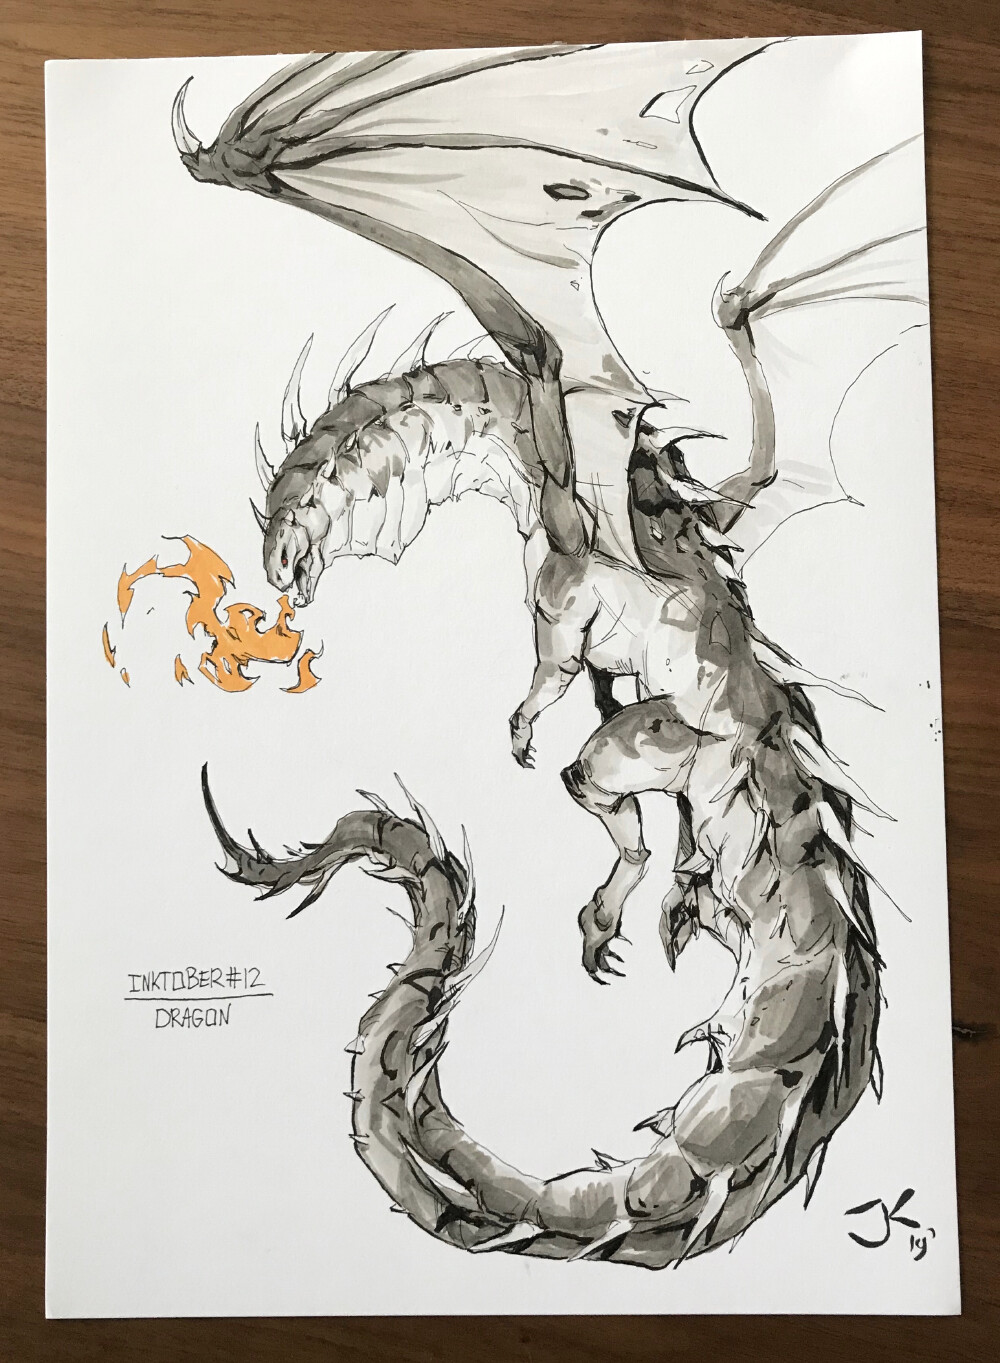 Day 12: Dragon